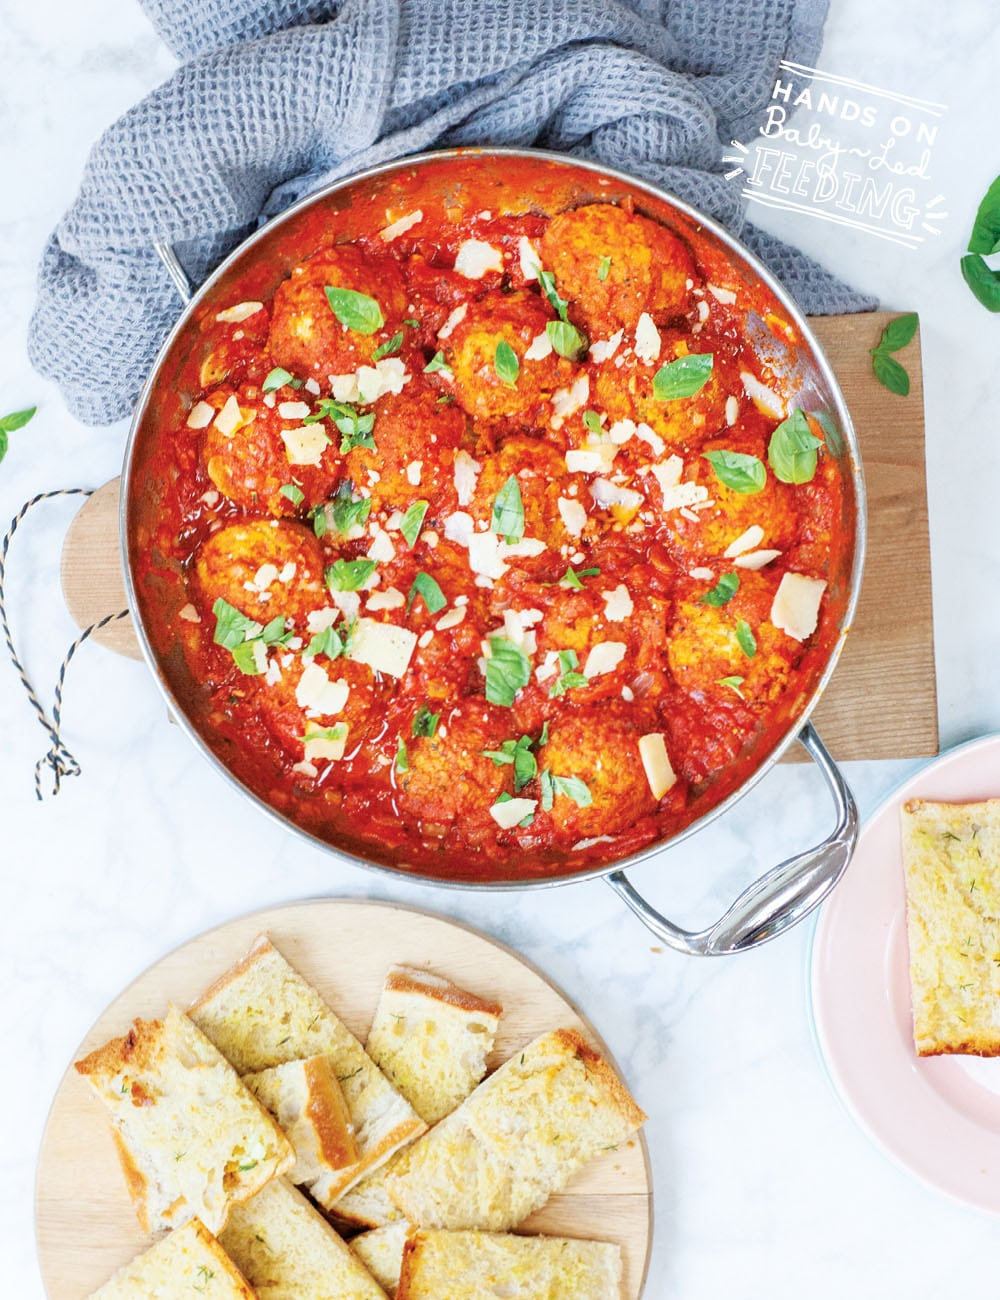 Easy vegetarian meatballs recipe safe for baby led weaning. Served with a side of garlic bread.